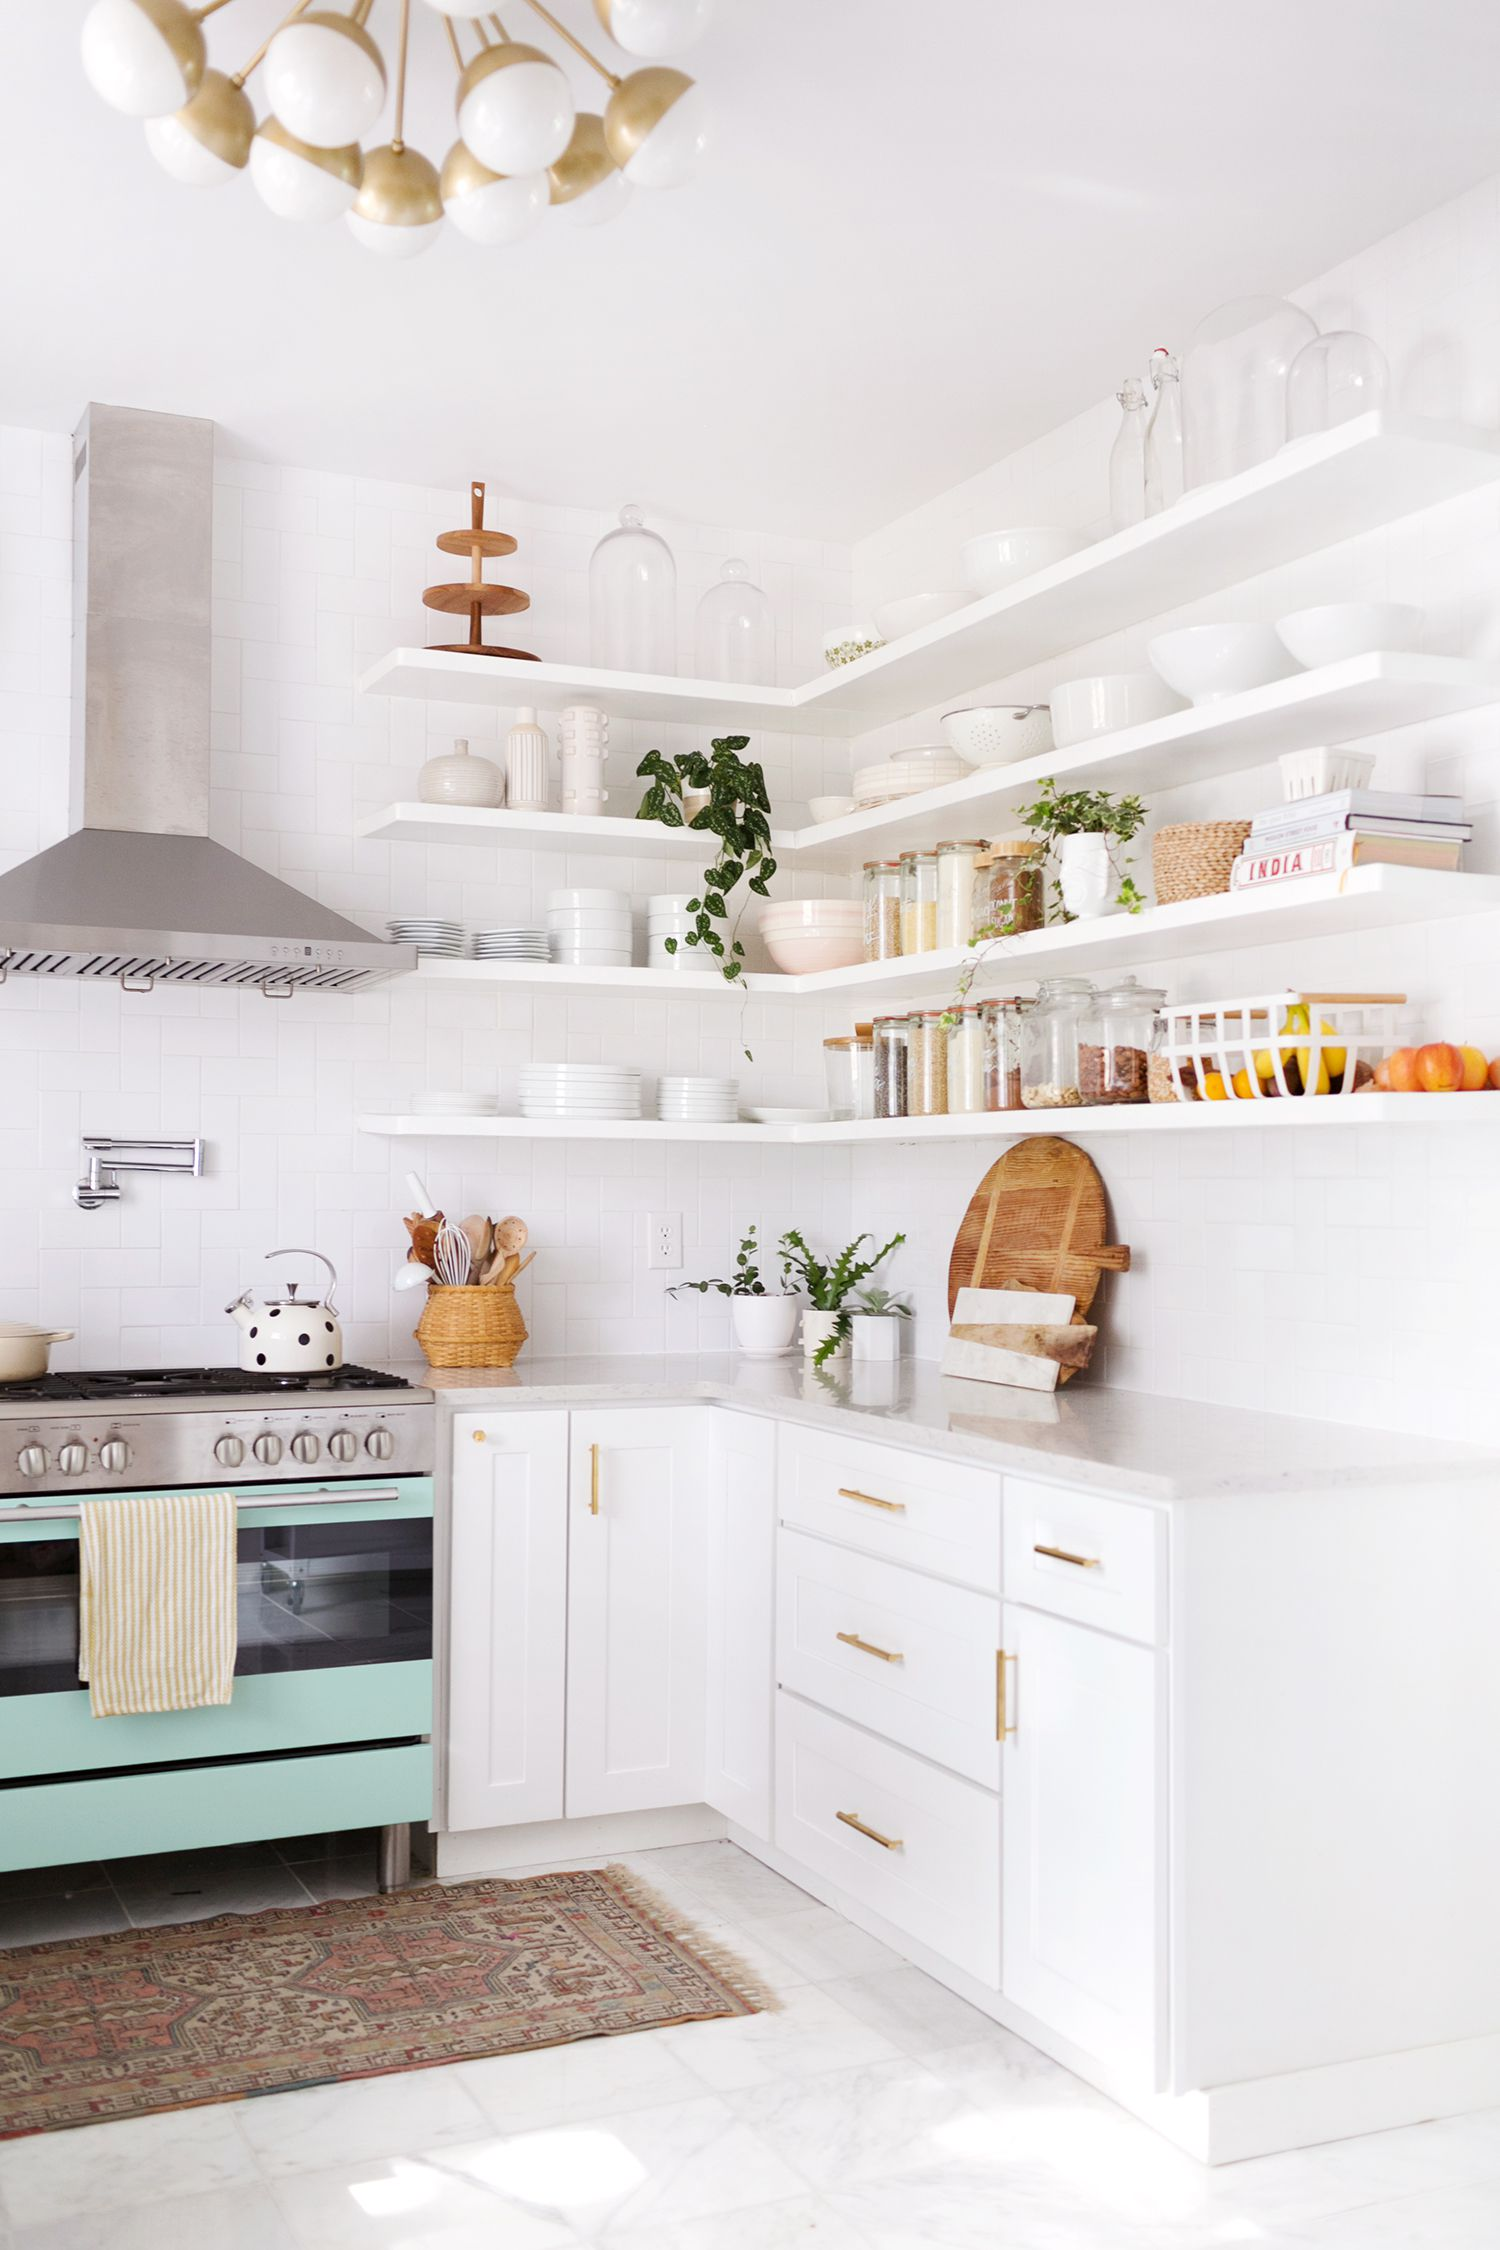 Makeover of the Week: The Creator of A Beautiful Mess Gave This Retro Kitchen an Inspiring Update